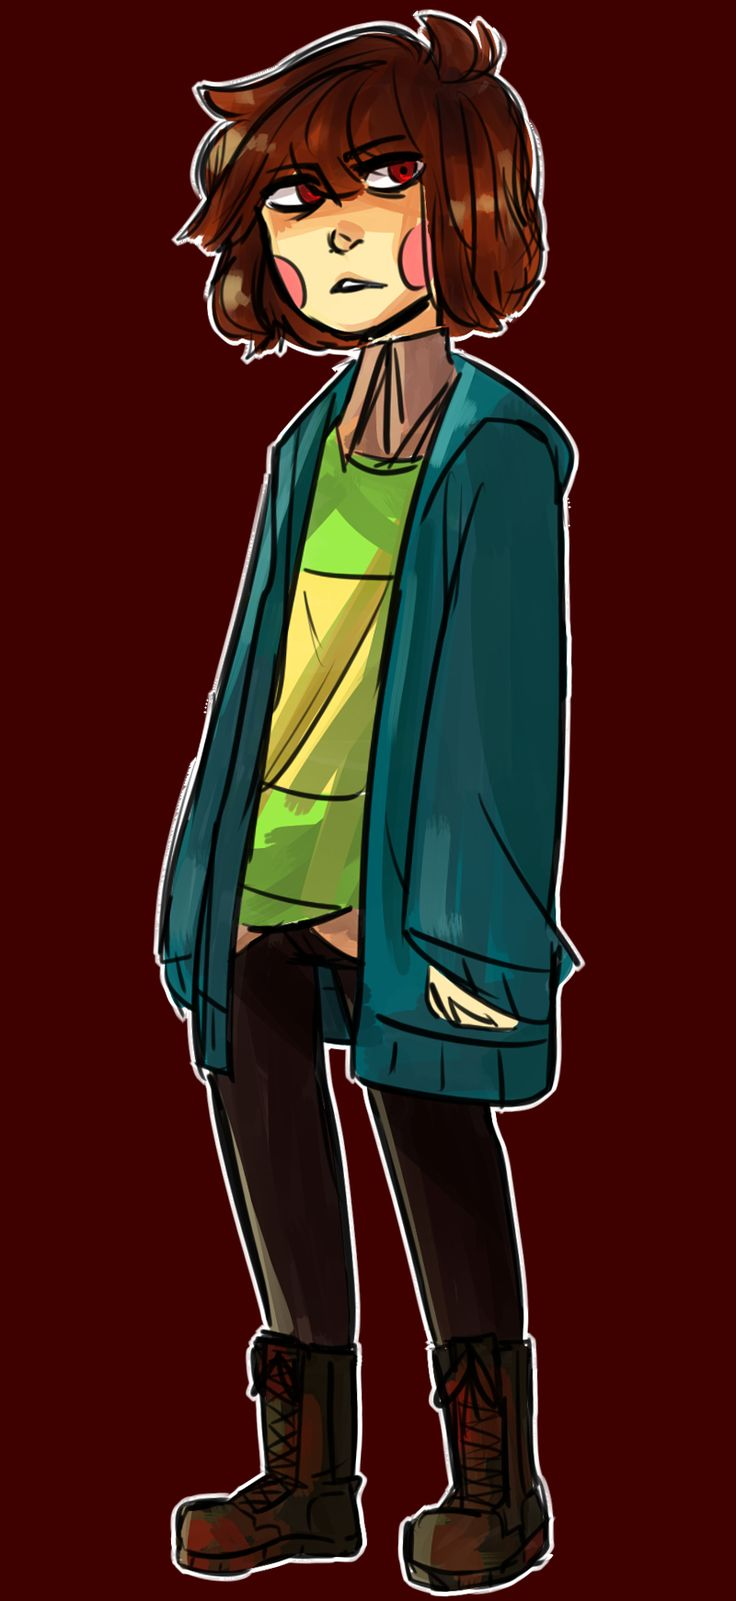 Chara (I like that this drawing is a boy, not a lot of people draw Chara as a boy)